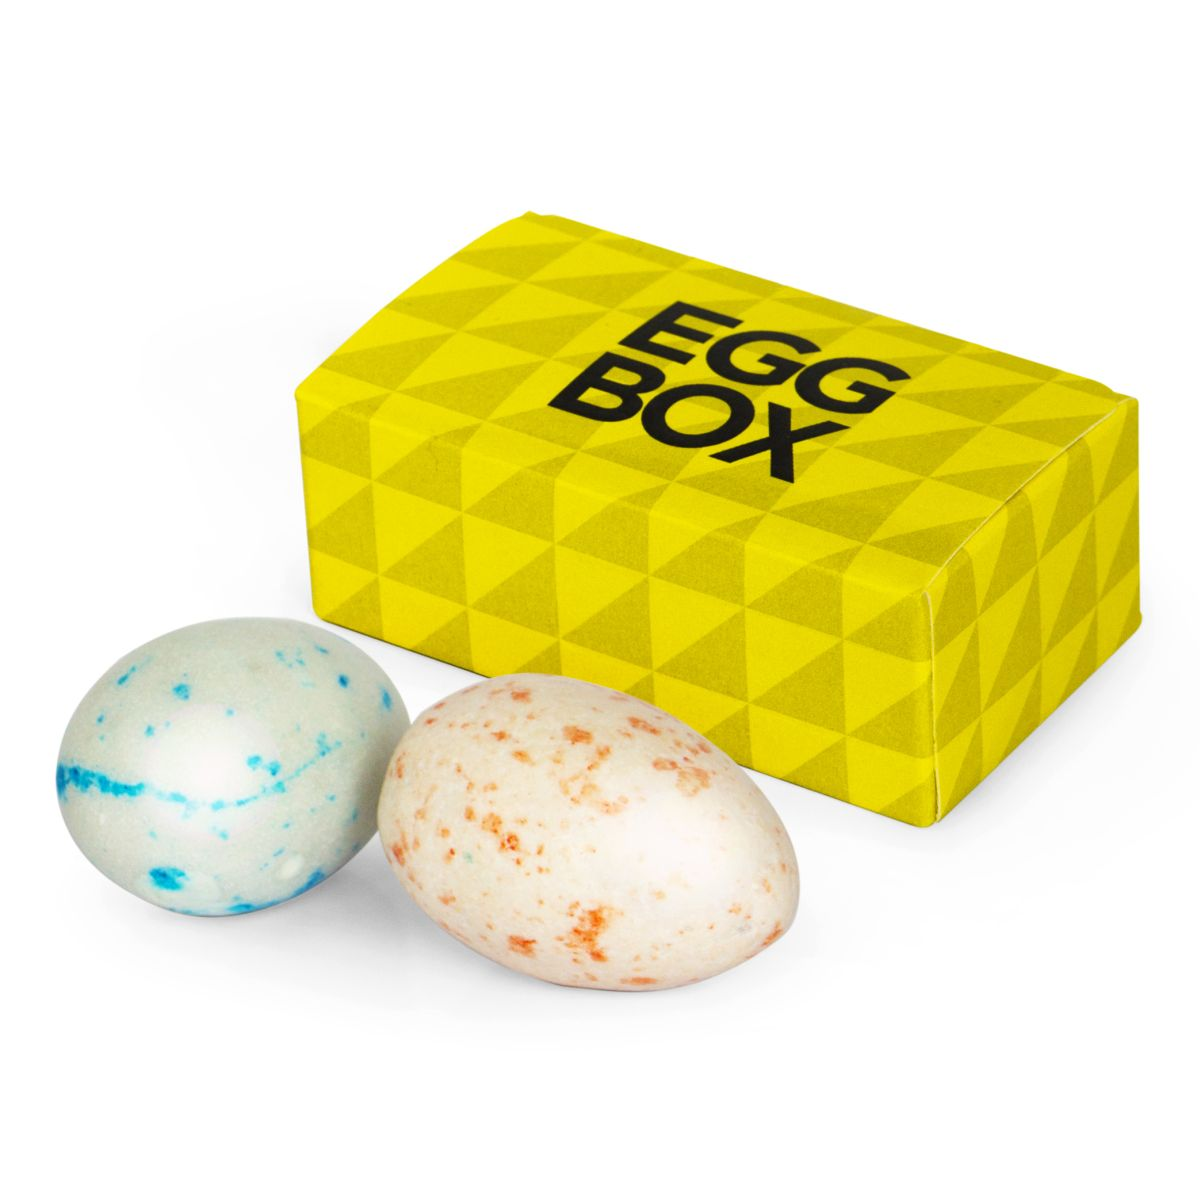 Two eggs in a box uk corporate gifts two eggs in a box negle Image collections